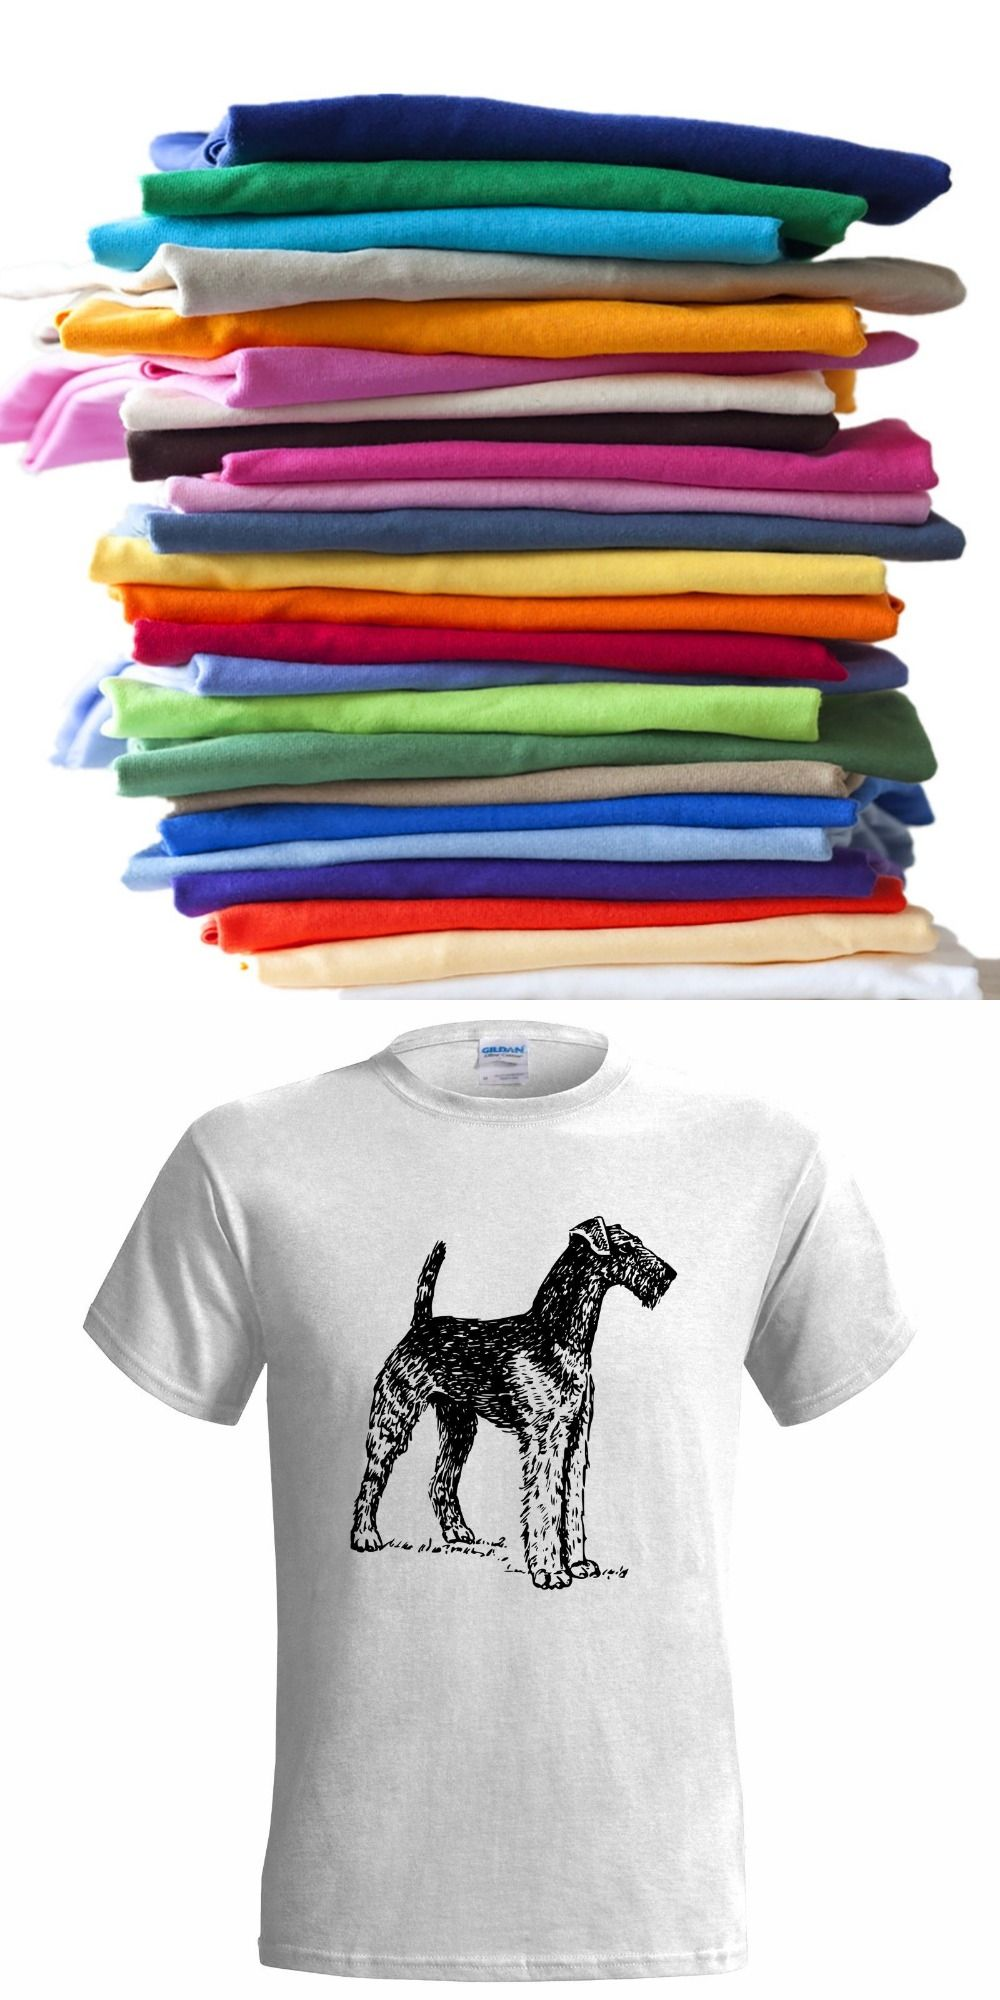 2017 Hot Sale Promotion Fashion O Neck Tee4u Tops Summer Cool Funny T Shirt  Menu0027s